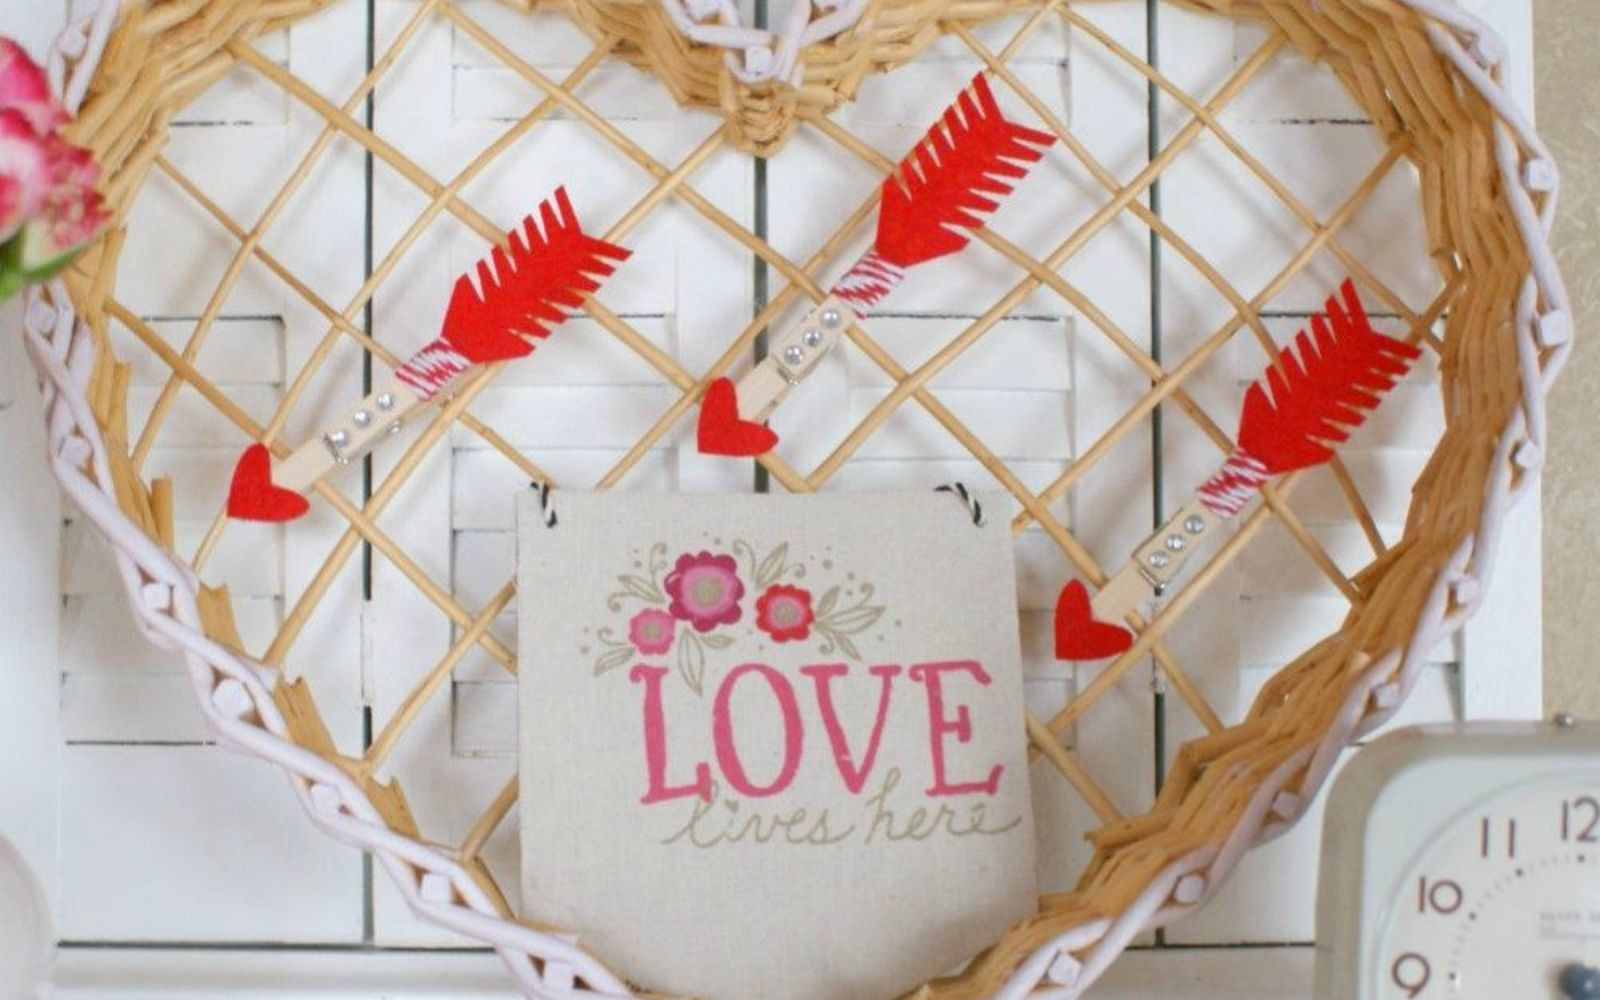 s how 13 dumpster divers decorate for valentine s day, repurposing upcycling, seasonal holiday decor, valentines day ideas, Cute Cupid s Arrow Wreath from a Basket